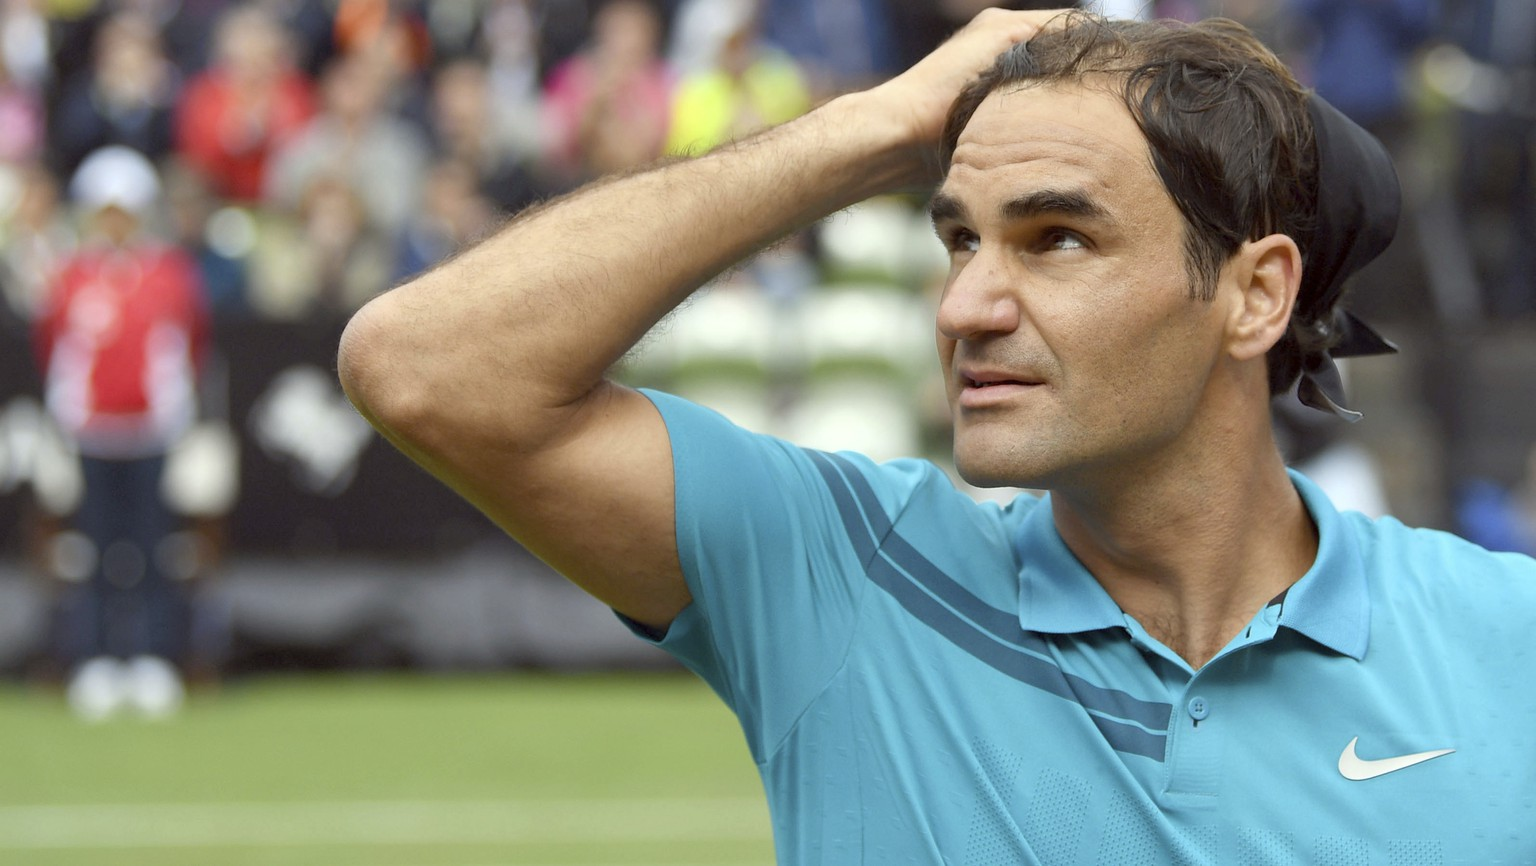 Roger Federer reacts as he defeats Mischa Zverev during the ATP Mercedes Cup tournament in Stuttgart, Germany, Wednesday, June 13, 2018. (Marijan Murat/dpa via AP)